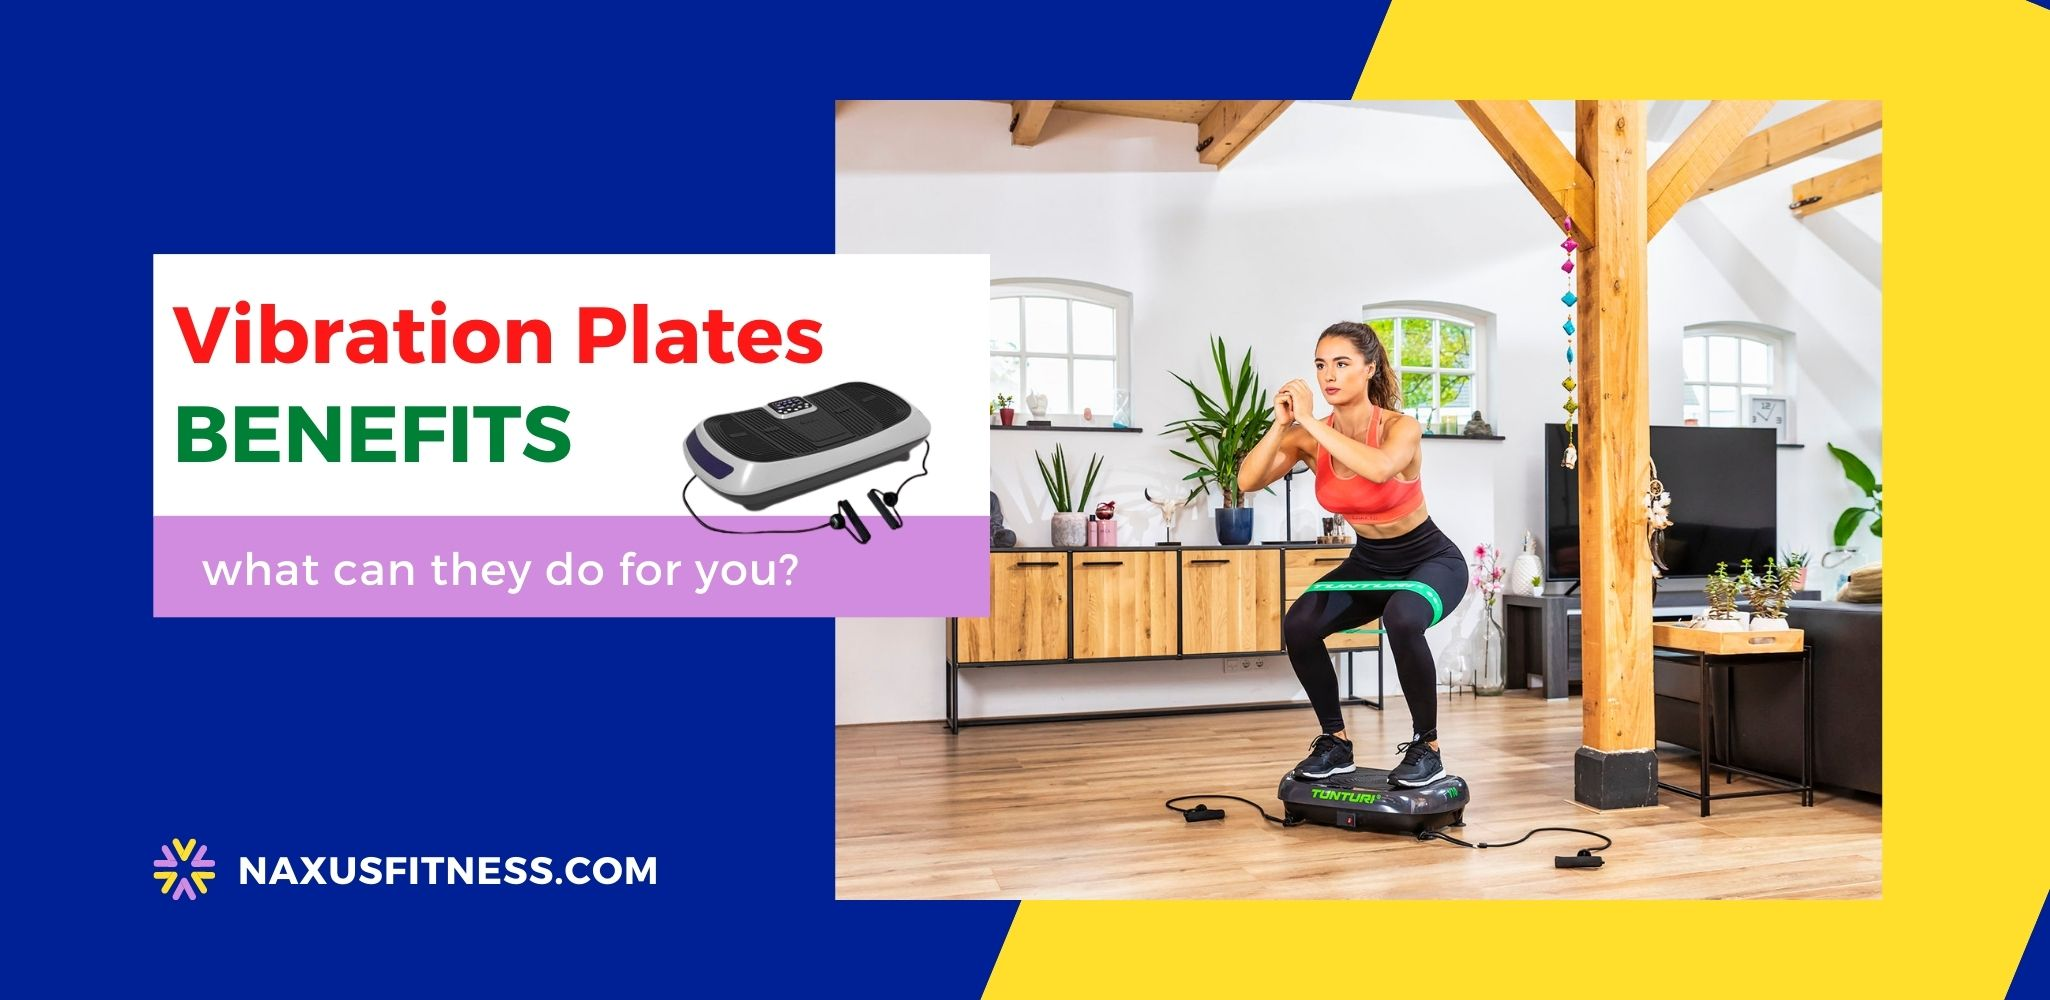 Vibration Plates Benefits